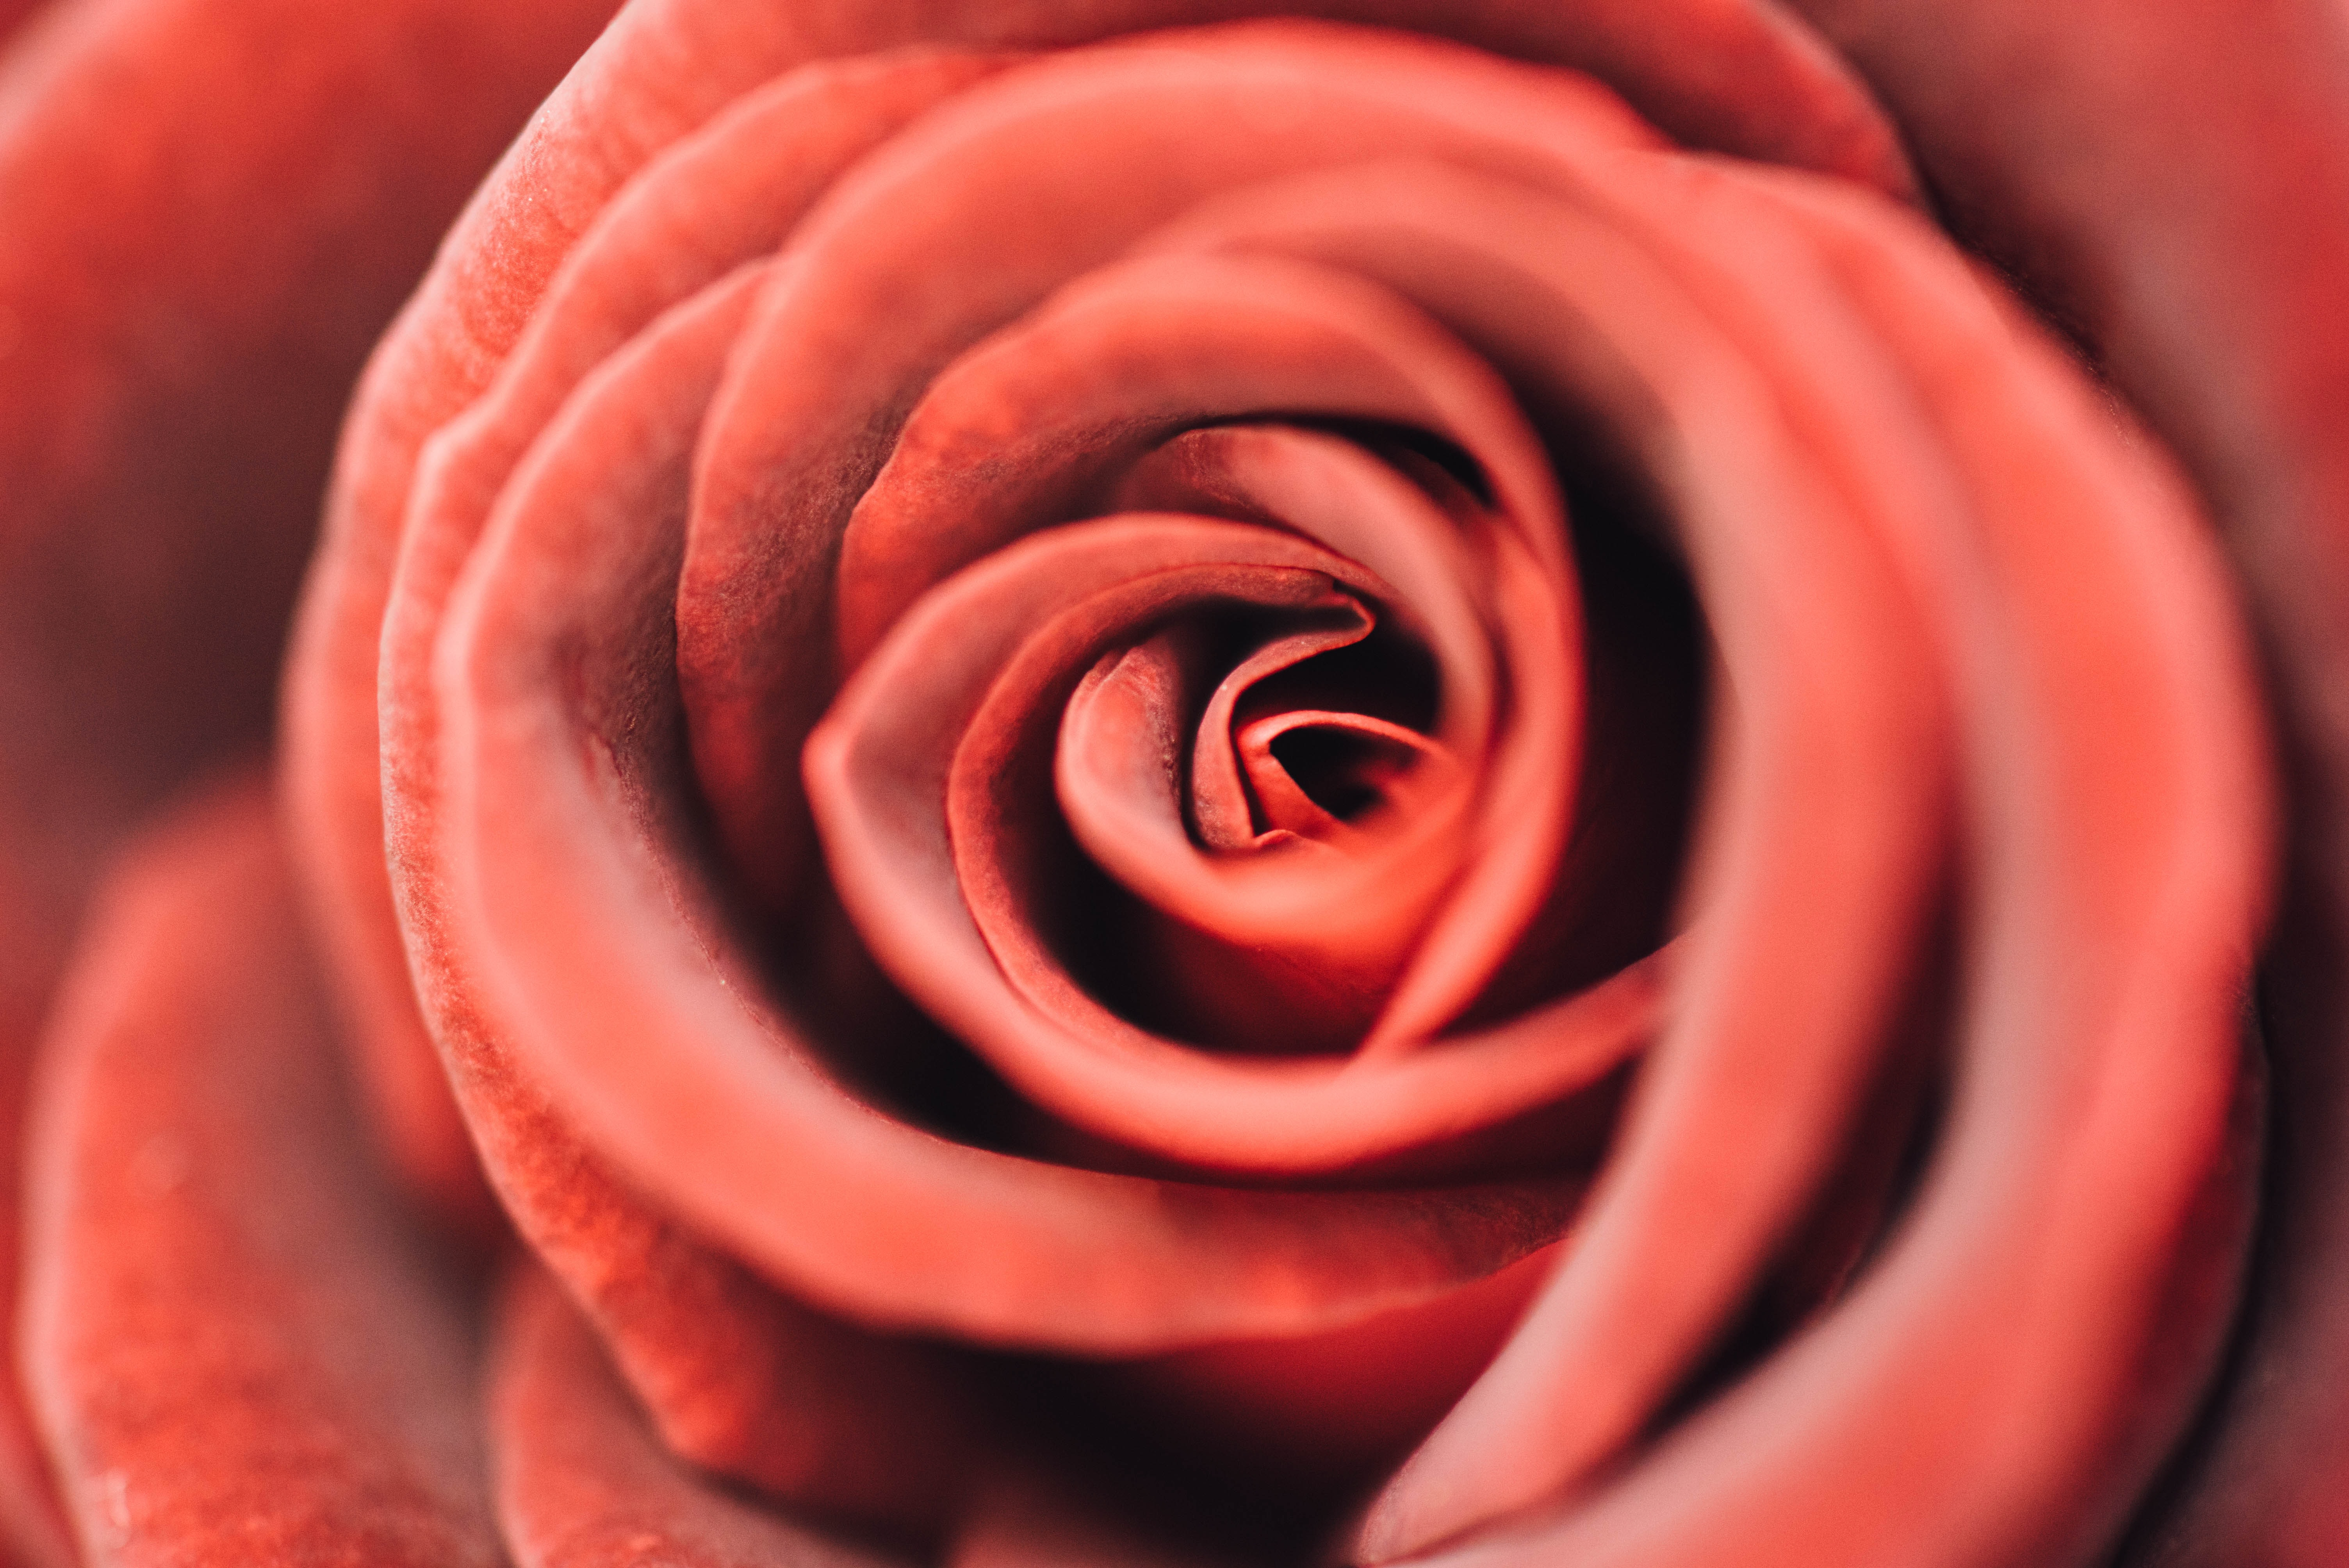 A macro shot of the center of a red rose